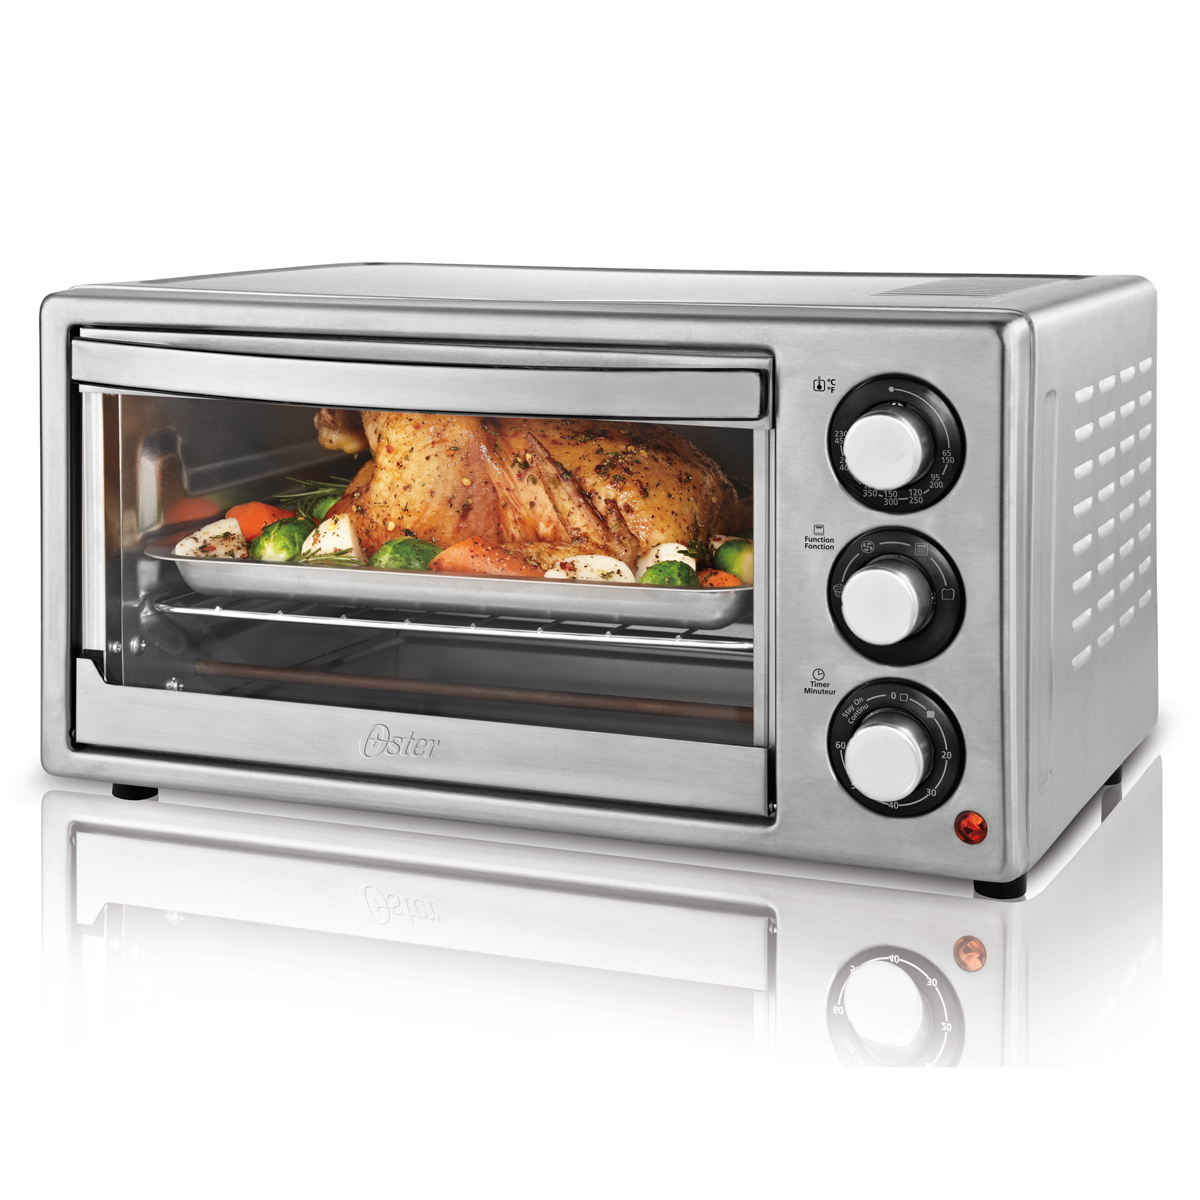 Countertop Roaster Oven Oster 6 Slice Convection Countertop Oven Stainless Steel